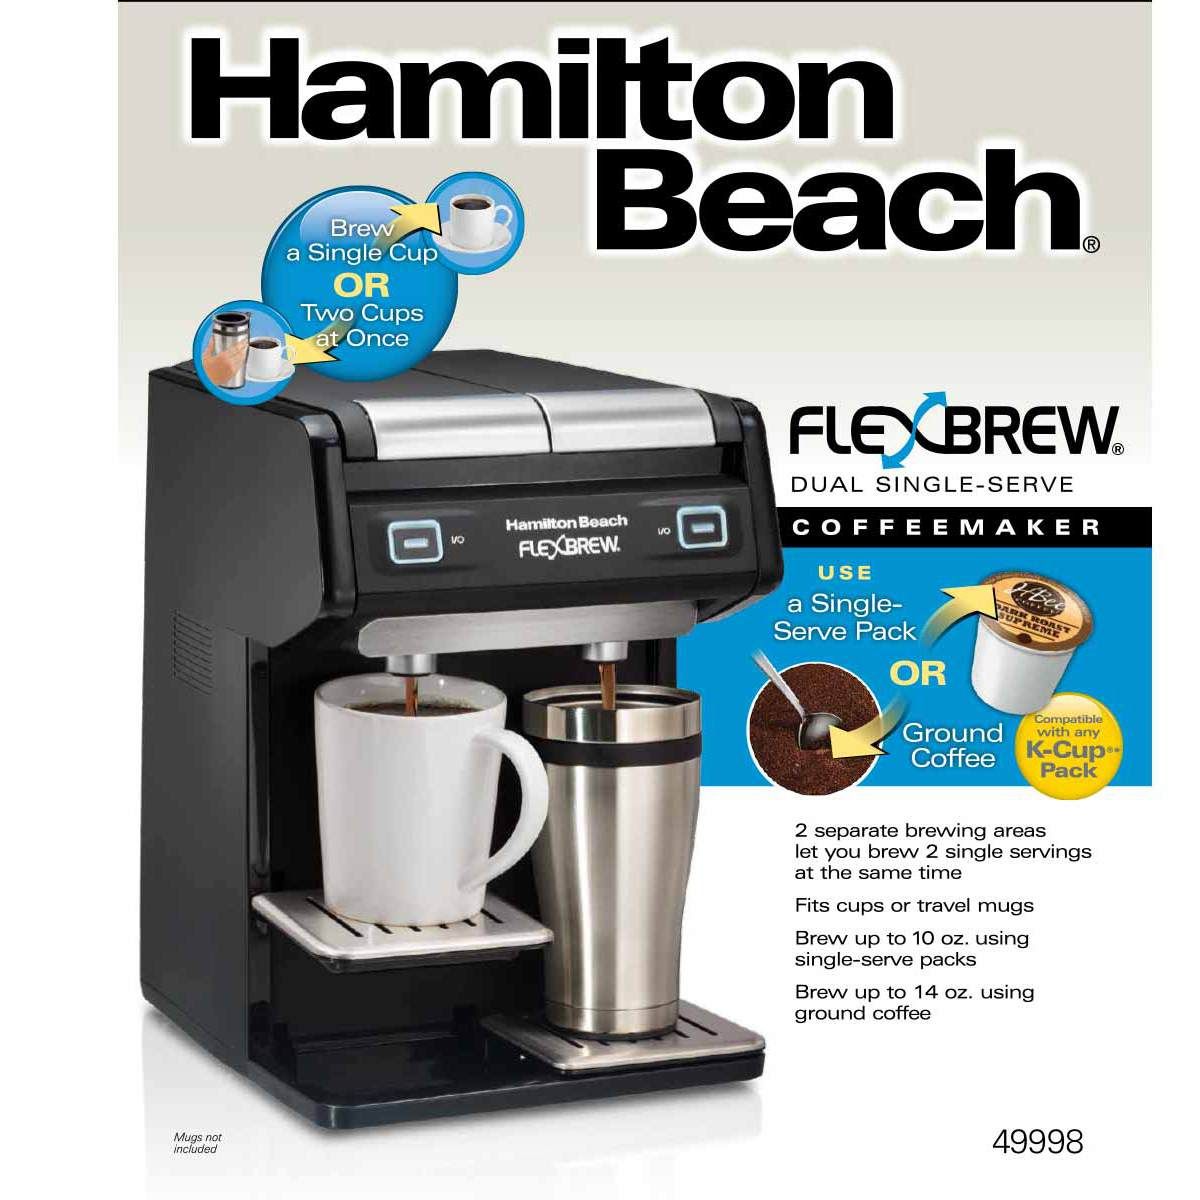 FlexBrew® Dual Single-Serve Coffee Maker (49998)